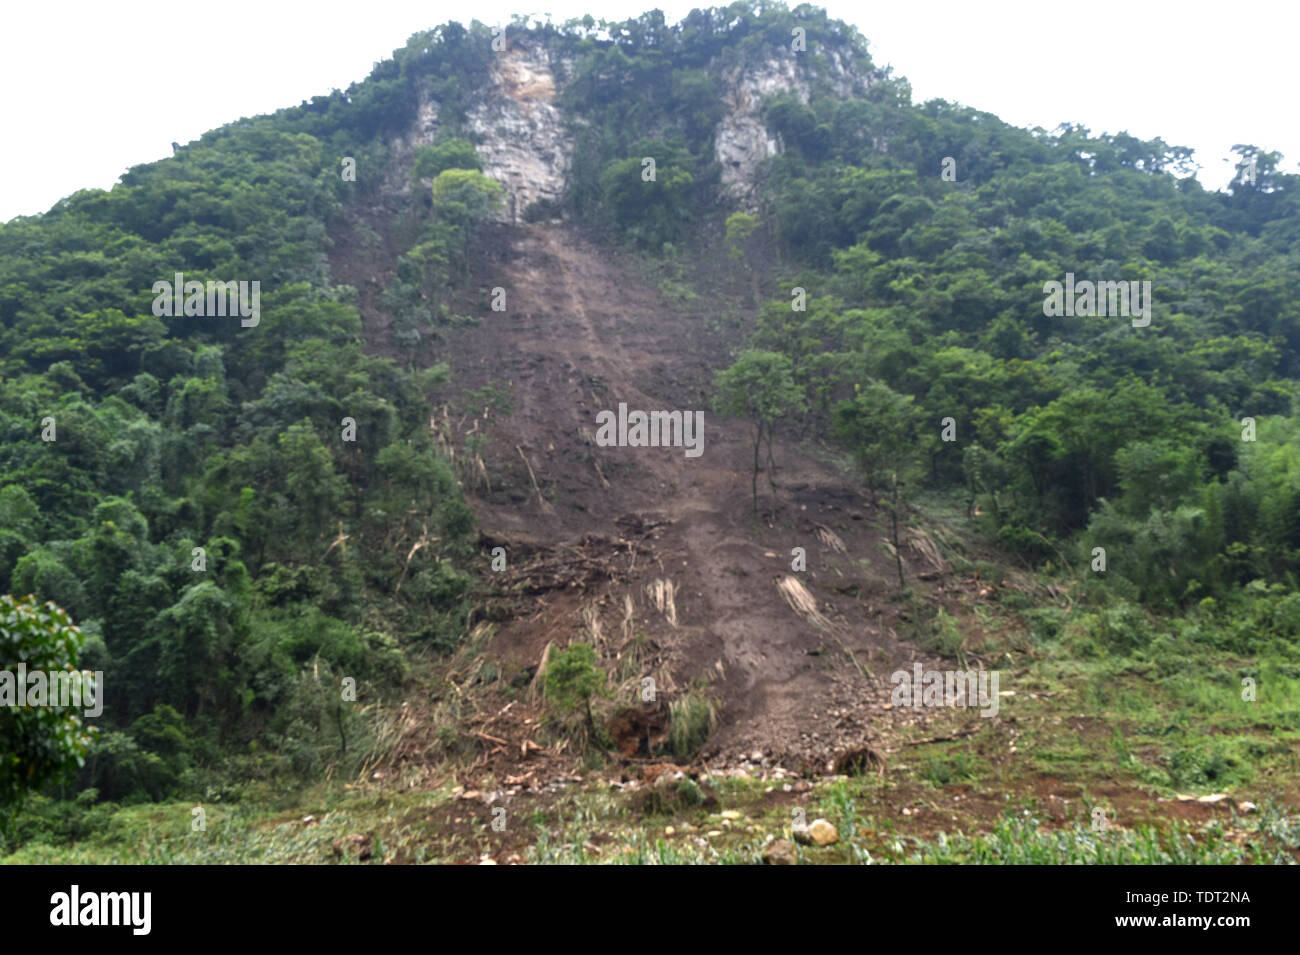 Changning. 18th June, 2019. Photo taken on June 18, 2019 shows a landslide after earthquake at Jinji Village of Shuanghe Town, Changning County of Yibin City, southwest China's Sichuan Province. Twelve people died and another 125 were injured after a 6.0-magnitude earthquake hit Changning County Monday night, China's Ministry of Emergency Management said on Tuesday. Credit: Chen Di/Xinhua/Alamy Live News - Stock Image